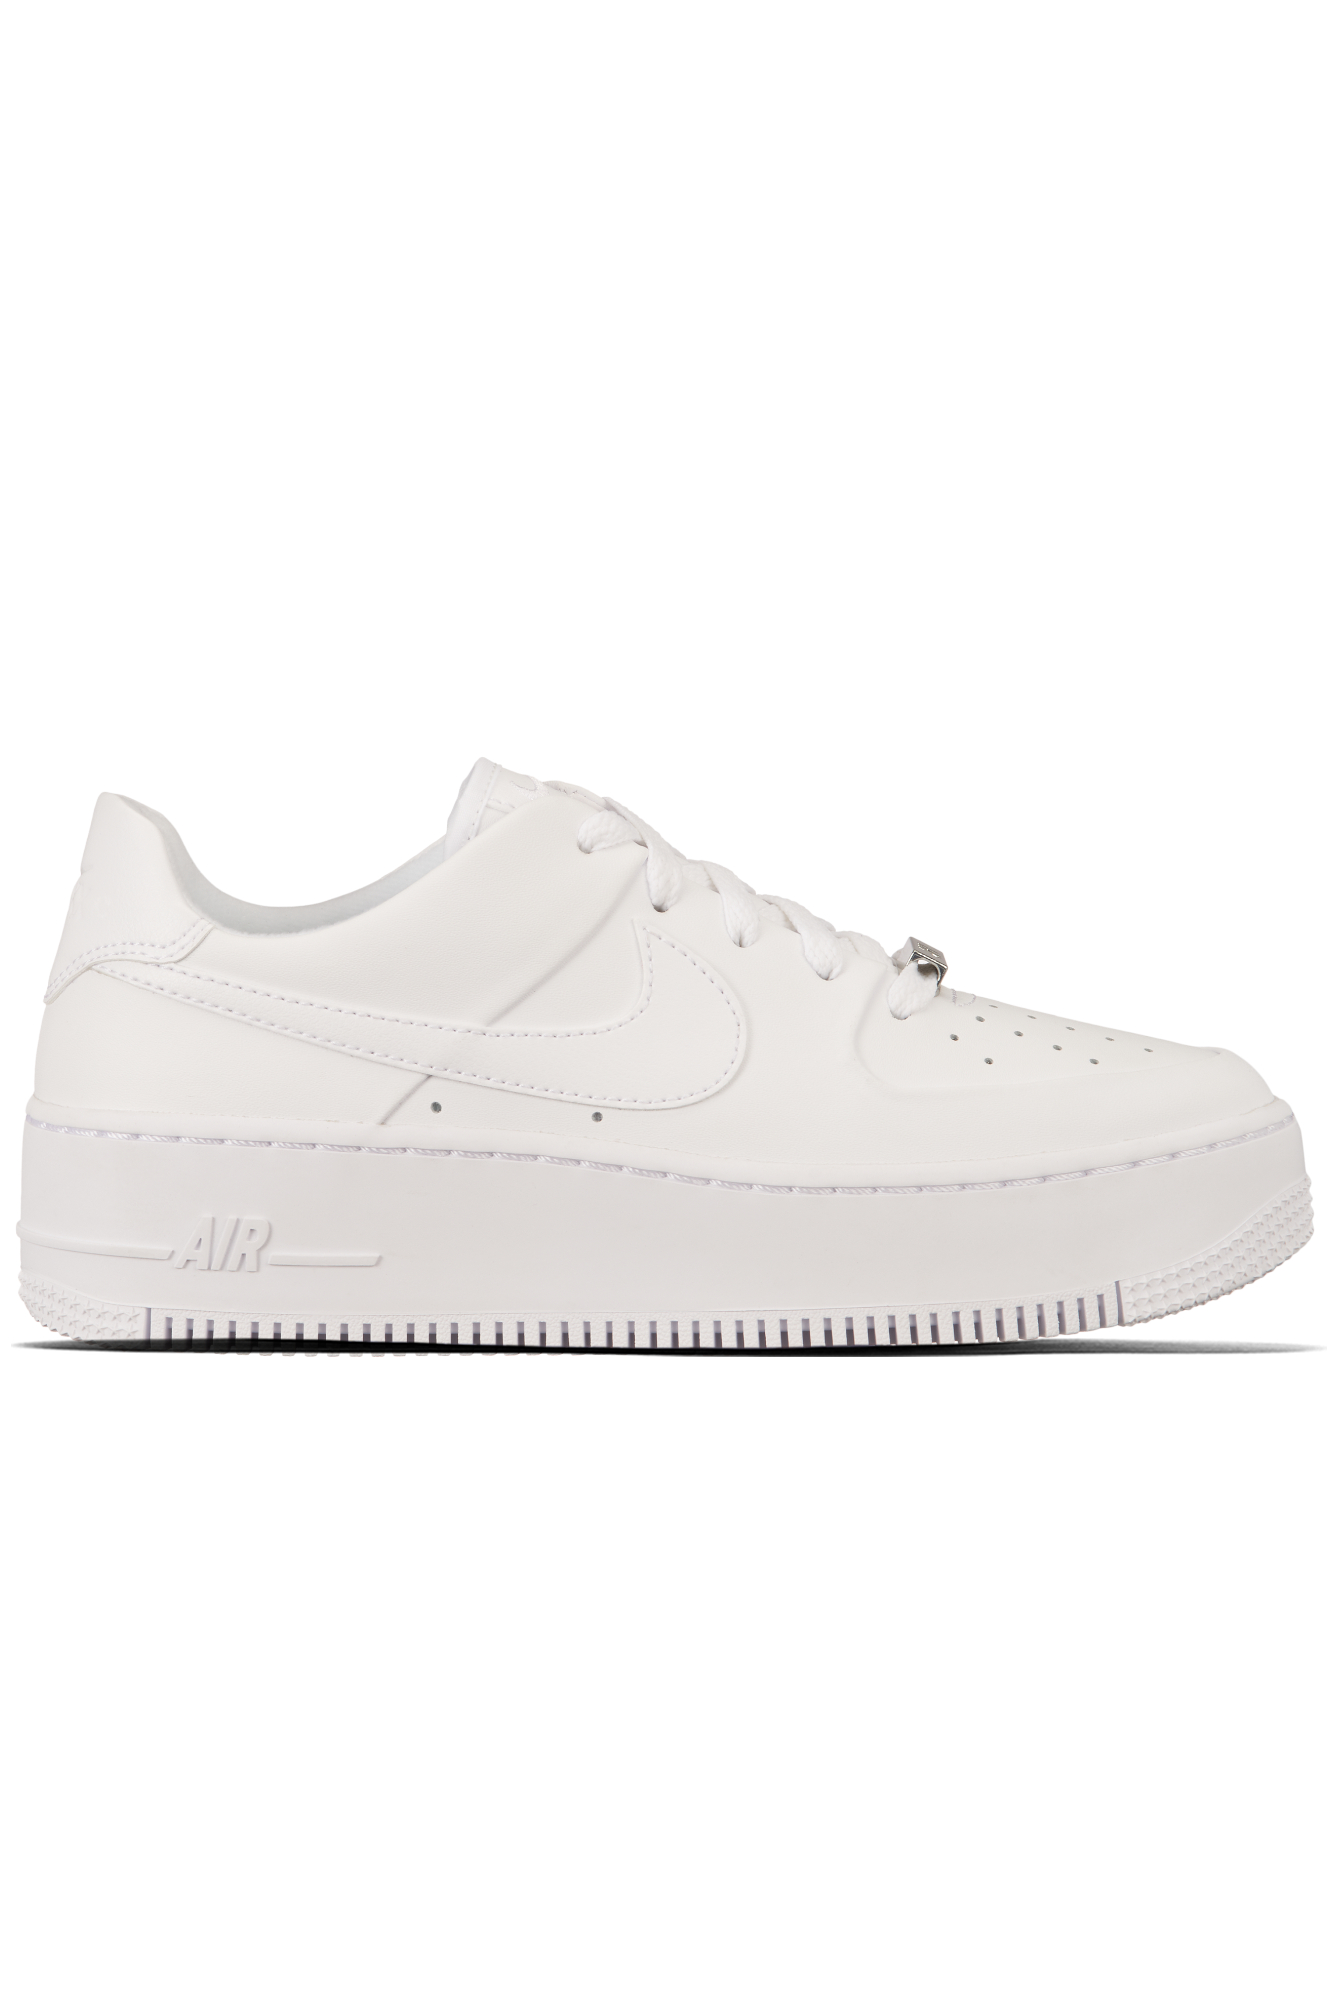 Buty Nike Air Force 1 Sage Low AR5339 100 Na co dzień